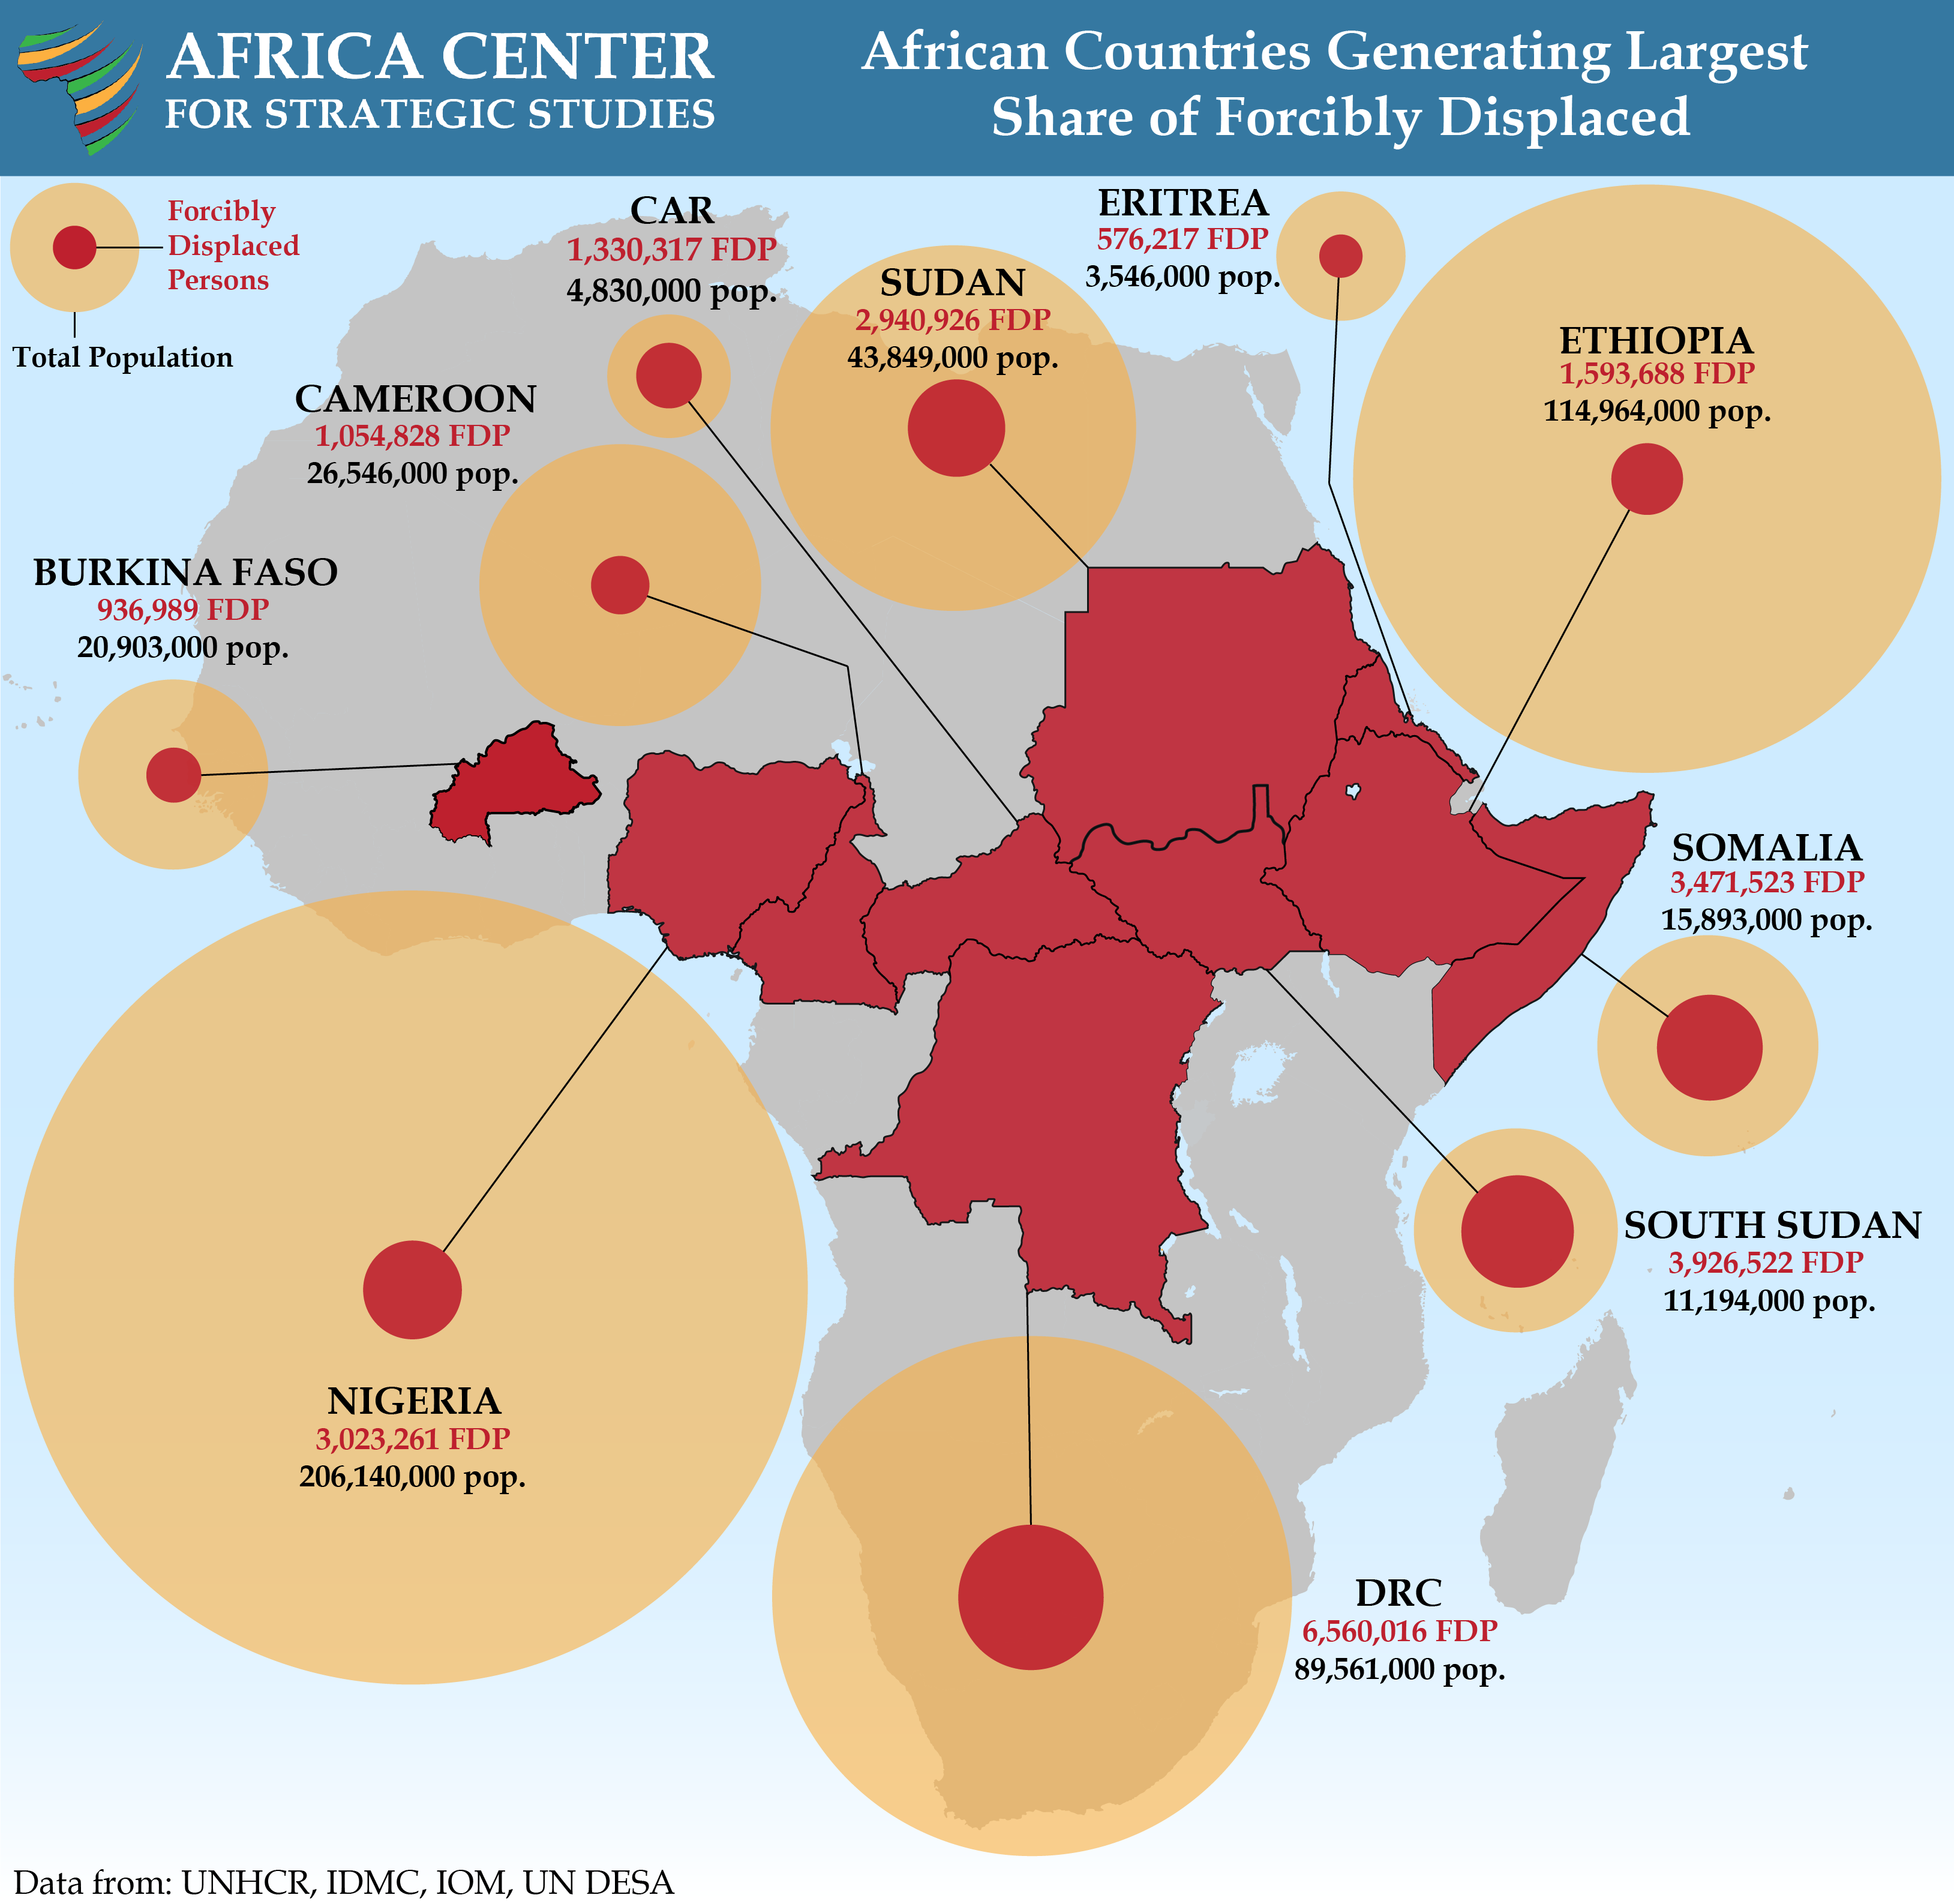 Map - African Countries with Largest Forcibly Displaced Populations